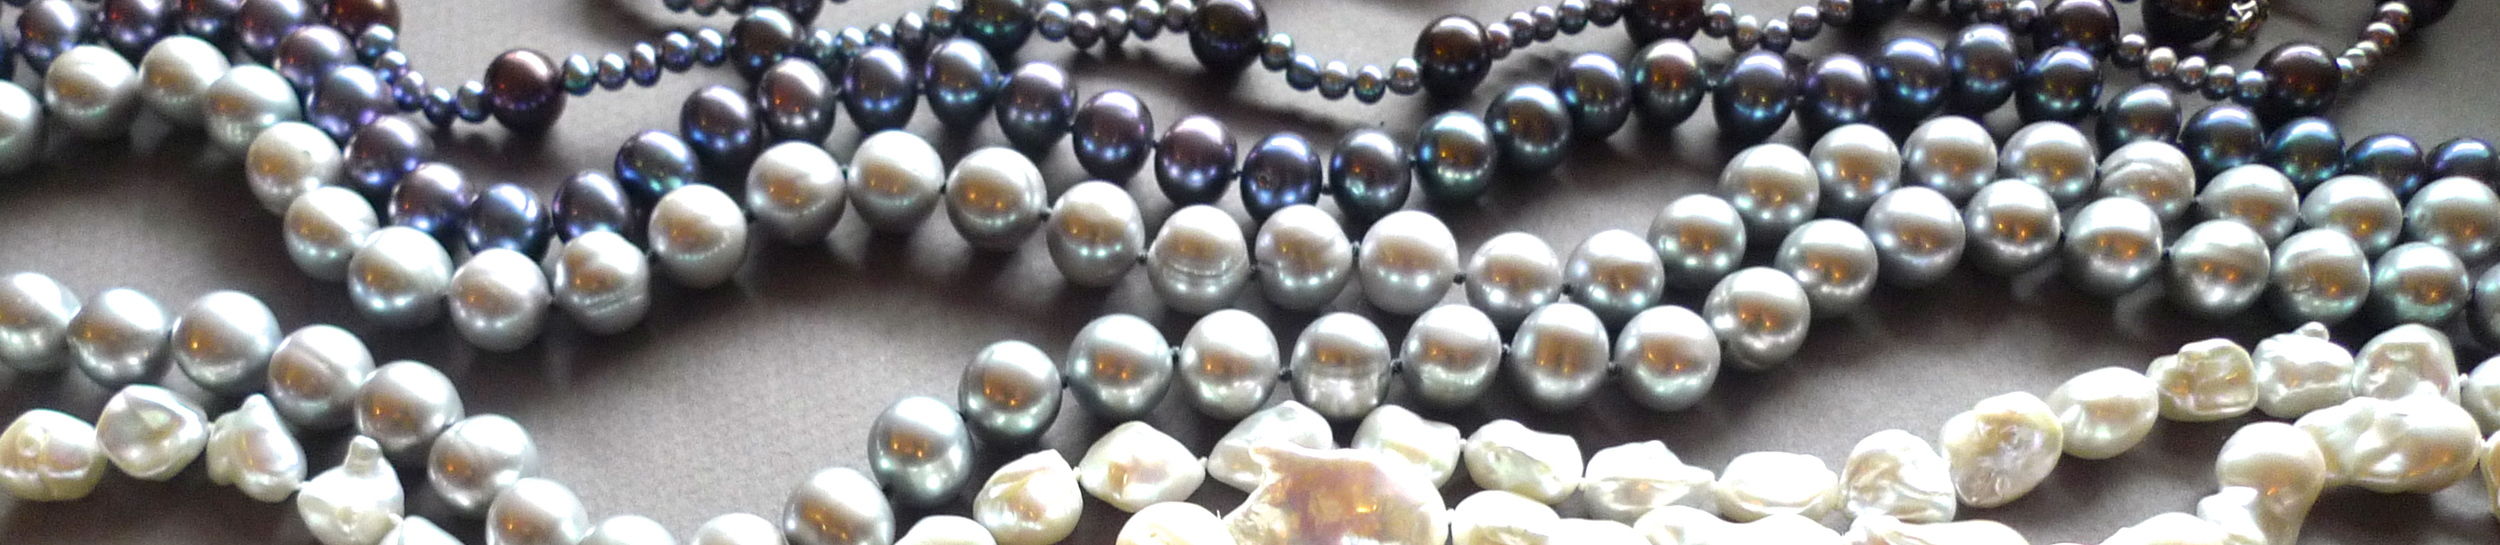 Some of Judi's beautiful pearl necklaces.